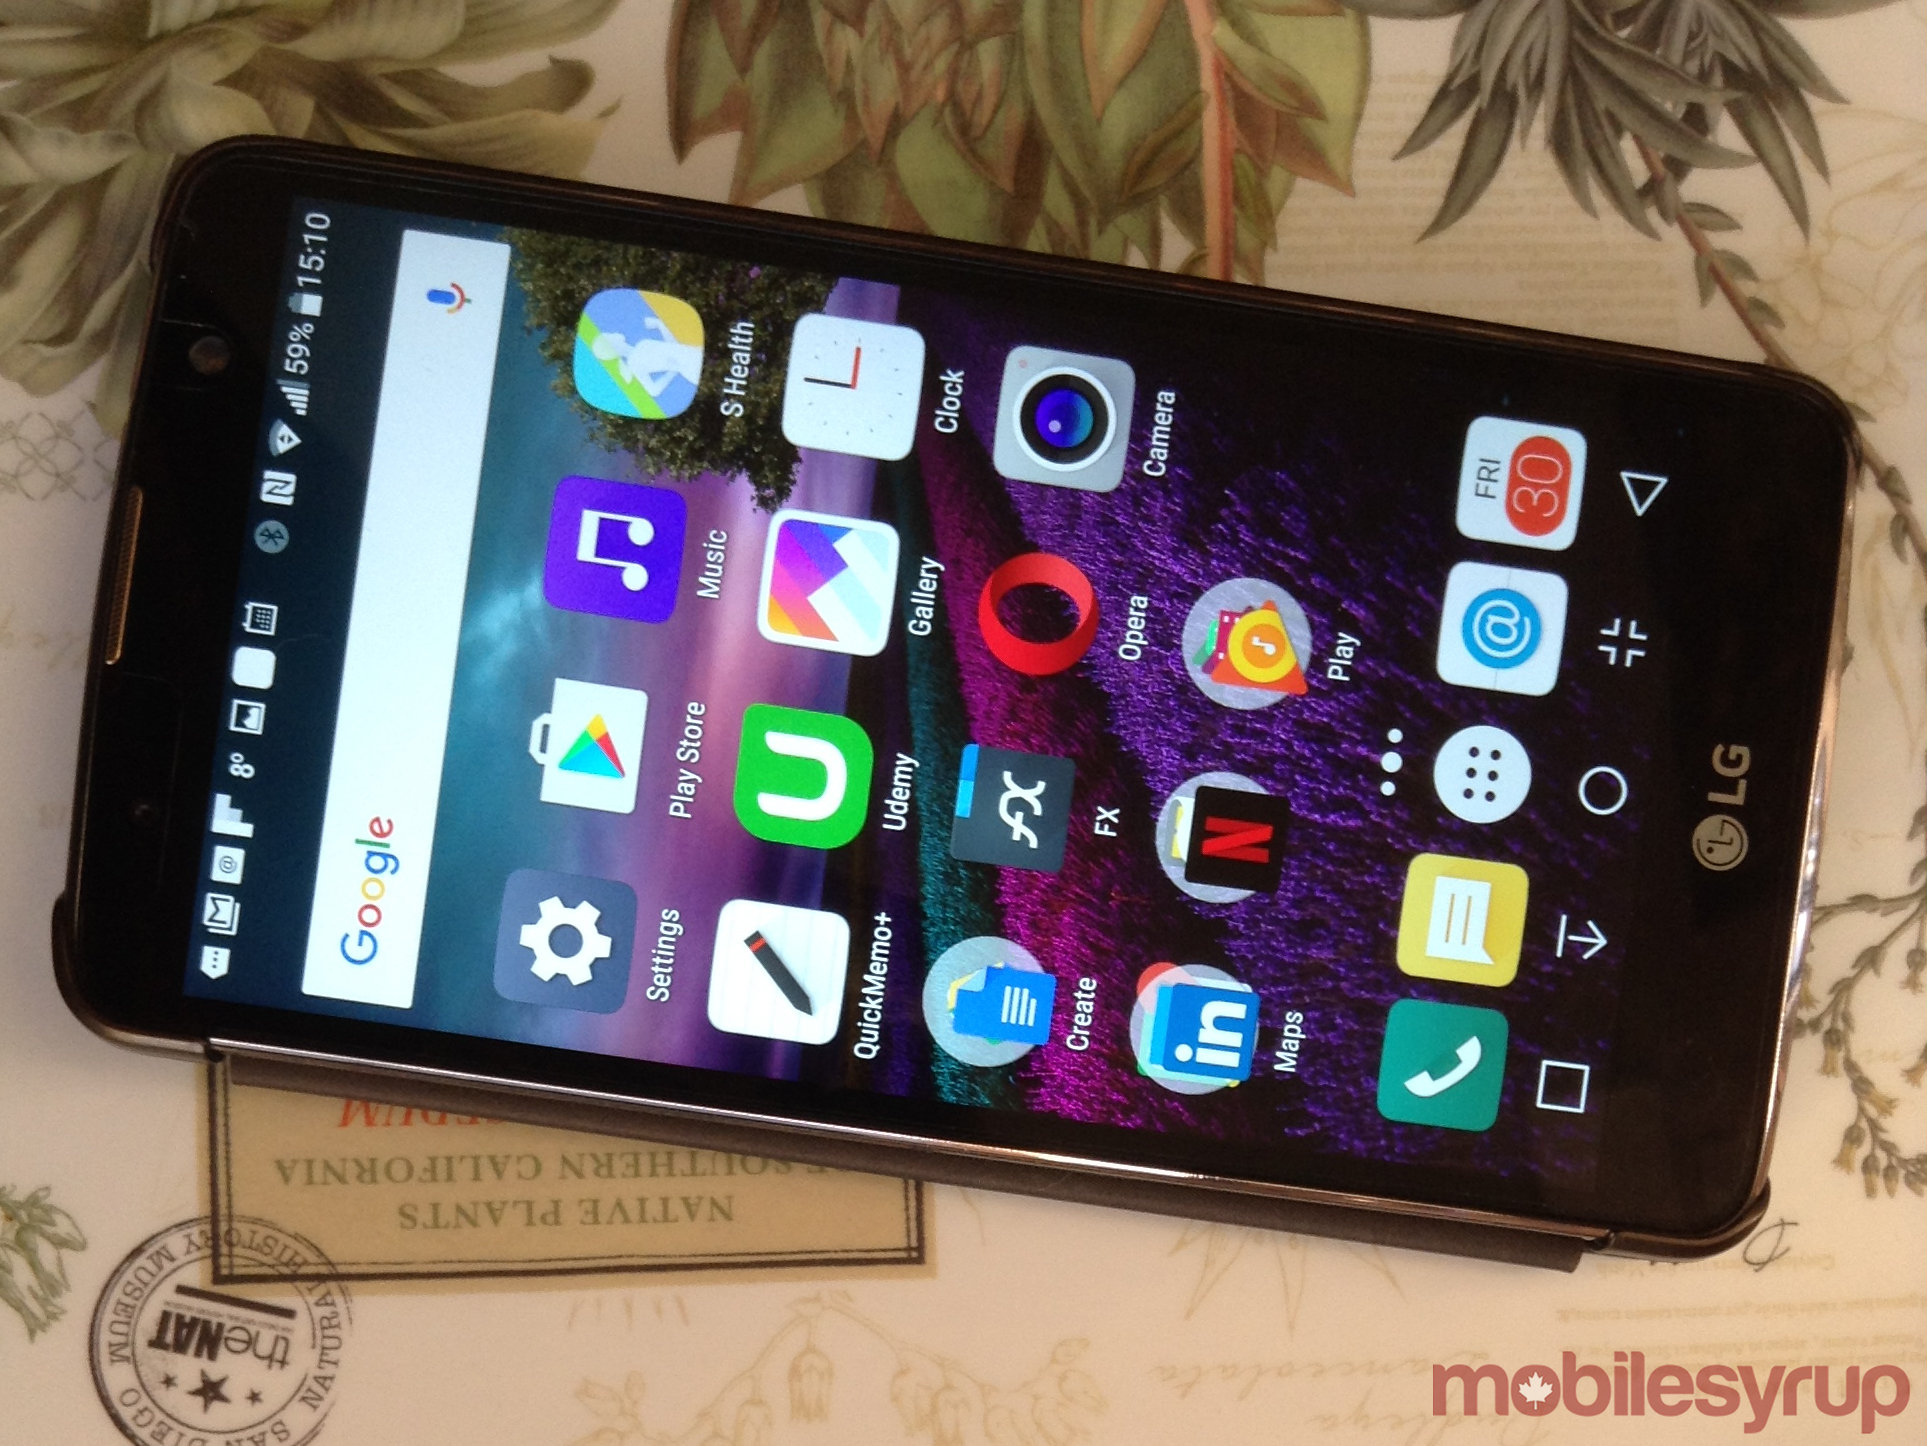 Why I settled on LG's Stylo 2 Plus as my Galaxy Note 7